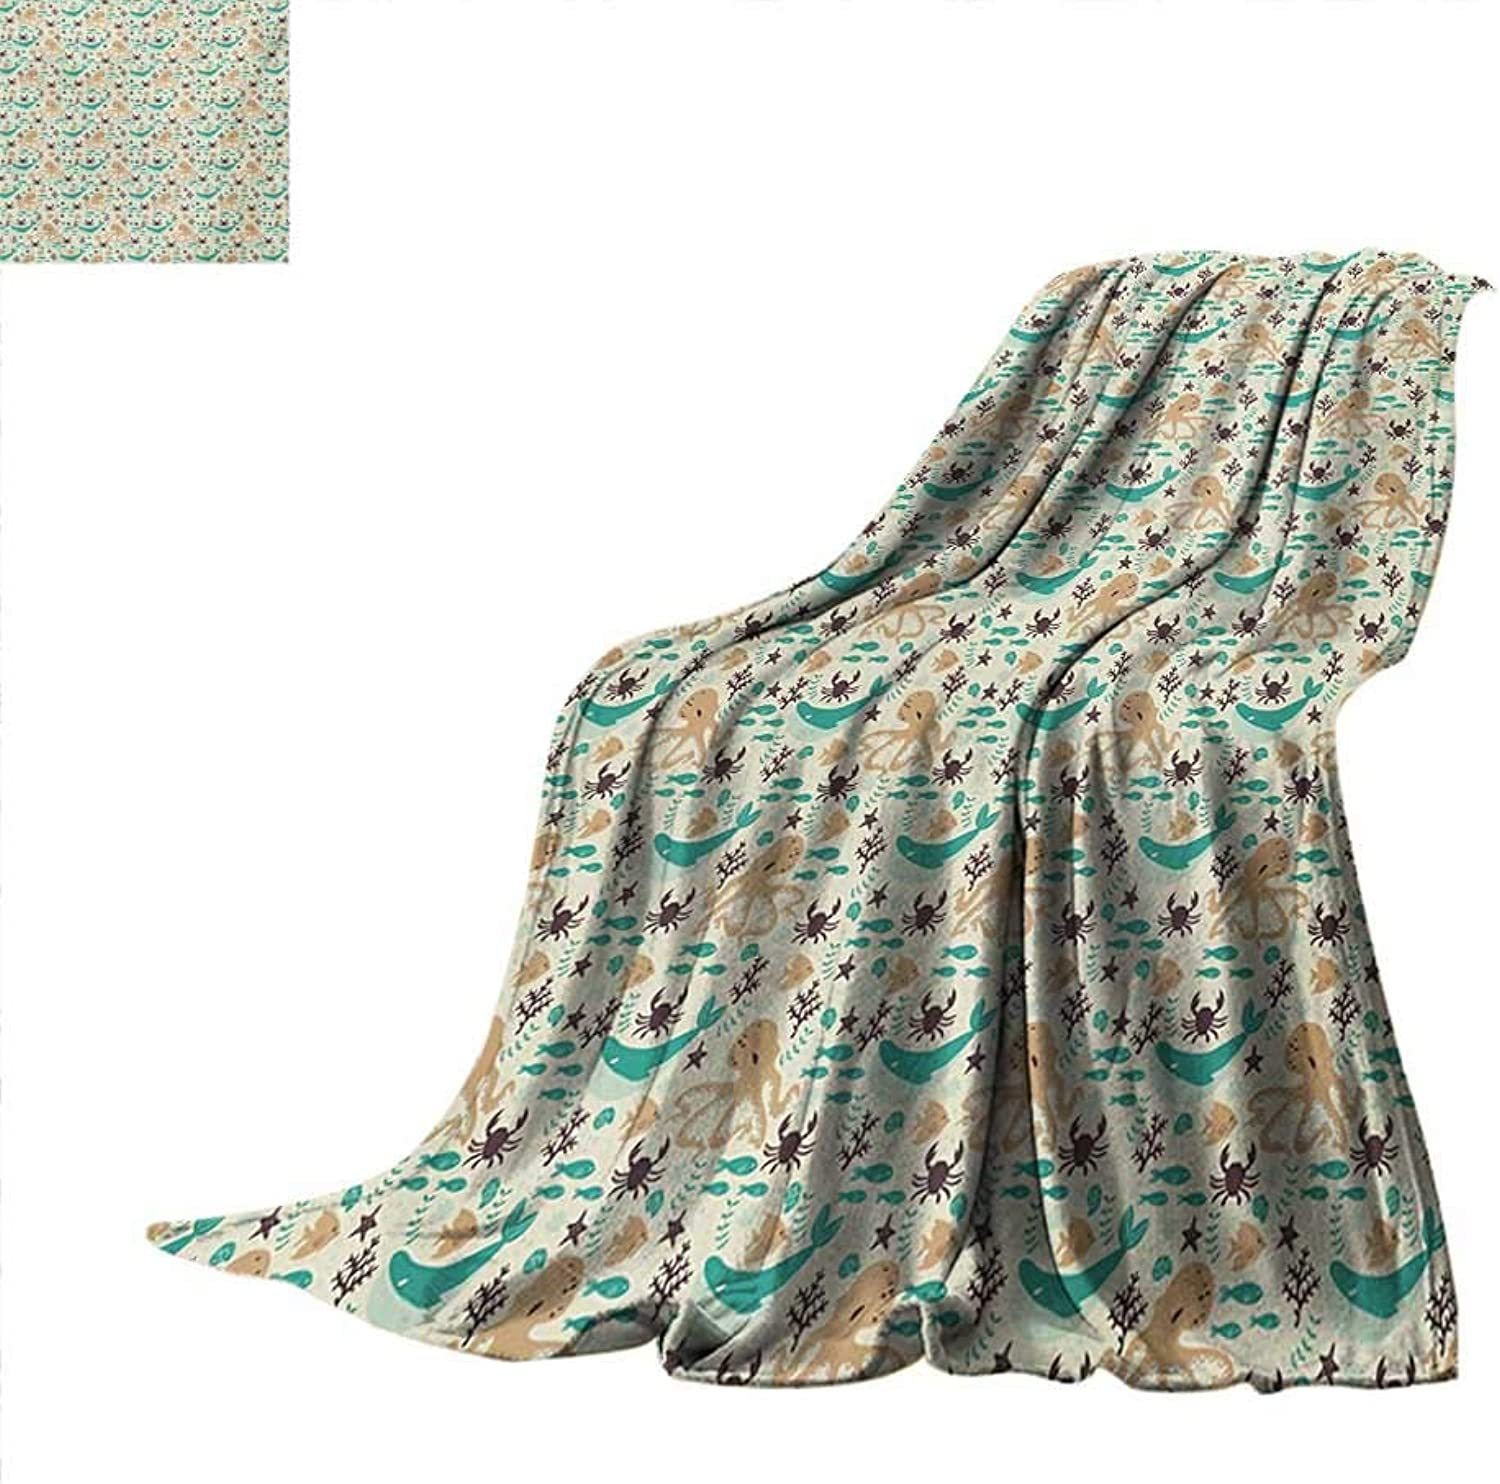 OctopusFlannel Single Student blanketPattern with Octopus Whale Fish and Crab Cartoon Sea ElementsStudent Blanket 50 x30  Sand and Dark Brown Turquoise